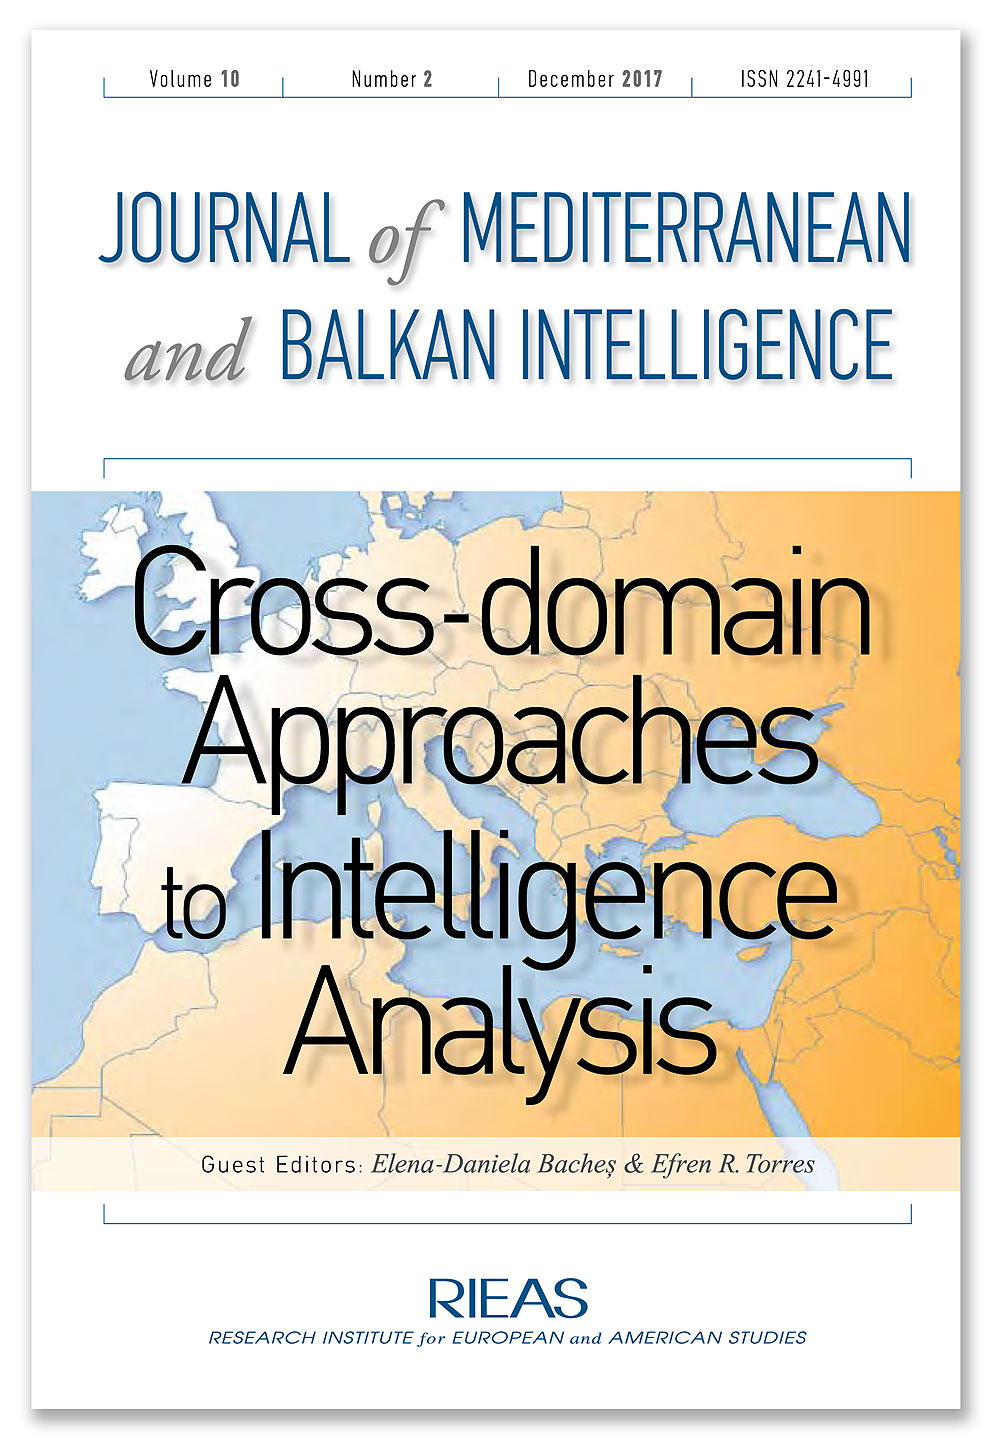 CROSS-DOMAIN APPROACHES TO INTELLIGENCE ANALYSIS